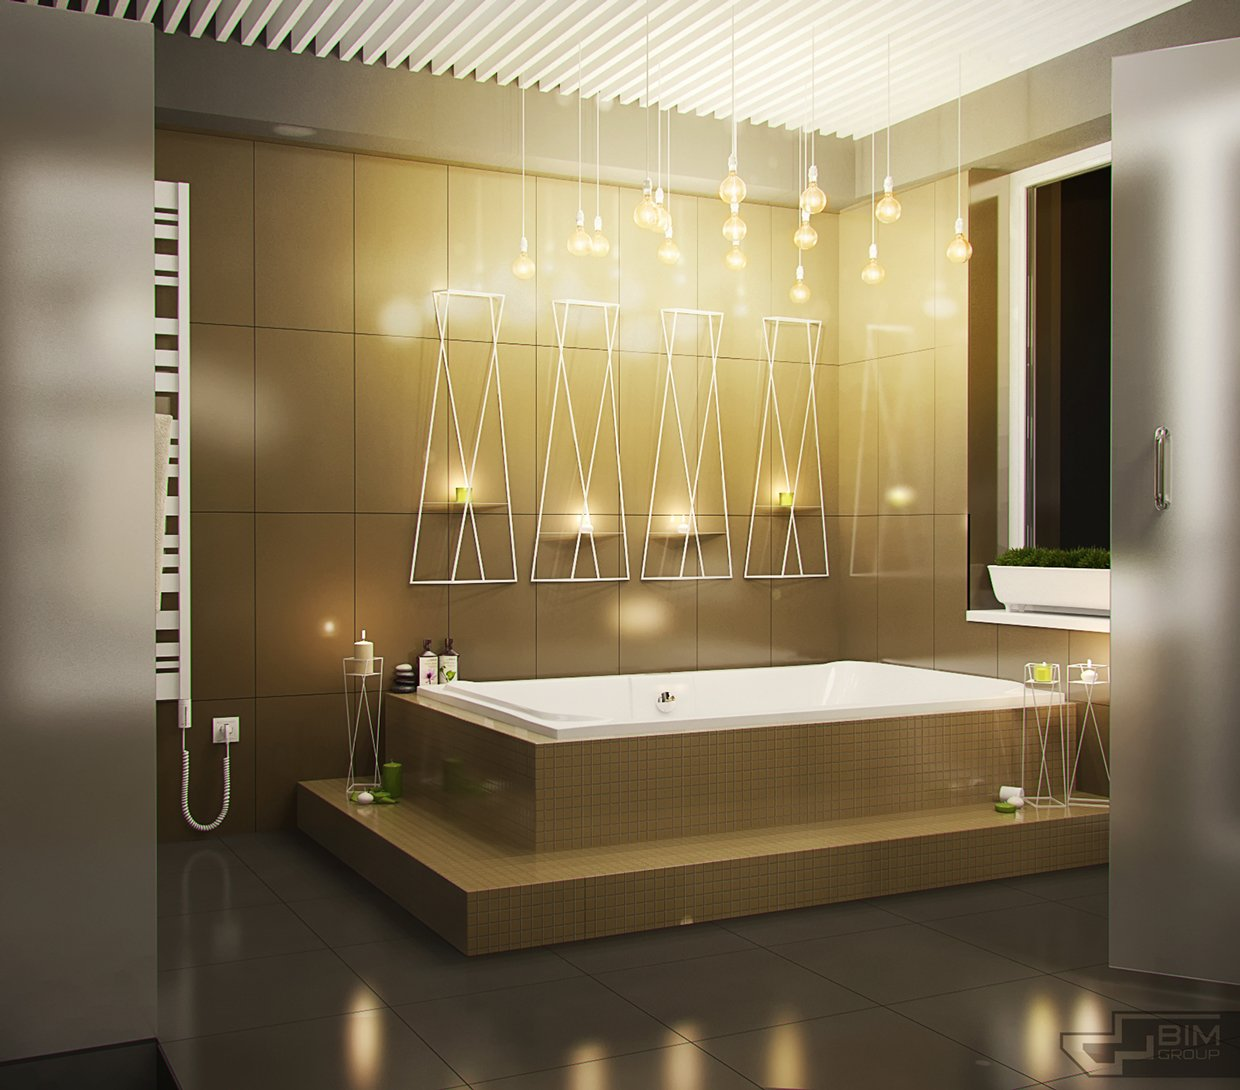 Lighting In Interior Design Creative Creativebathroomlighting  Interior Design Ideas.